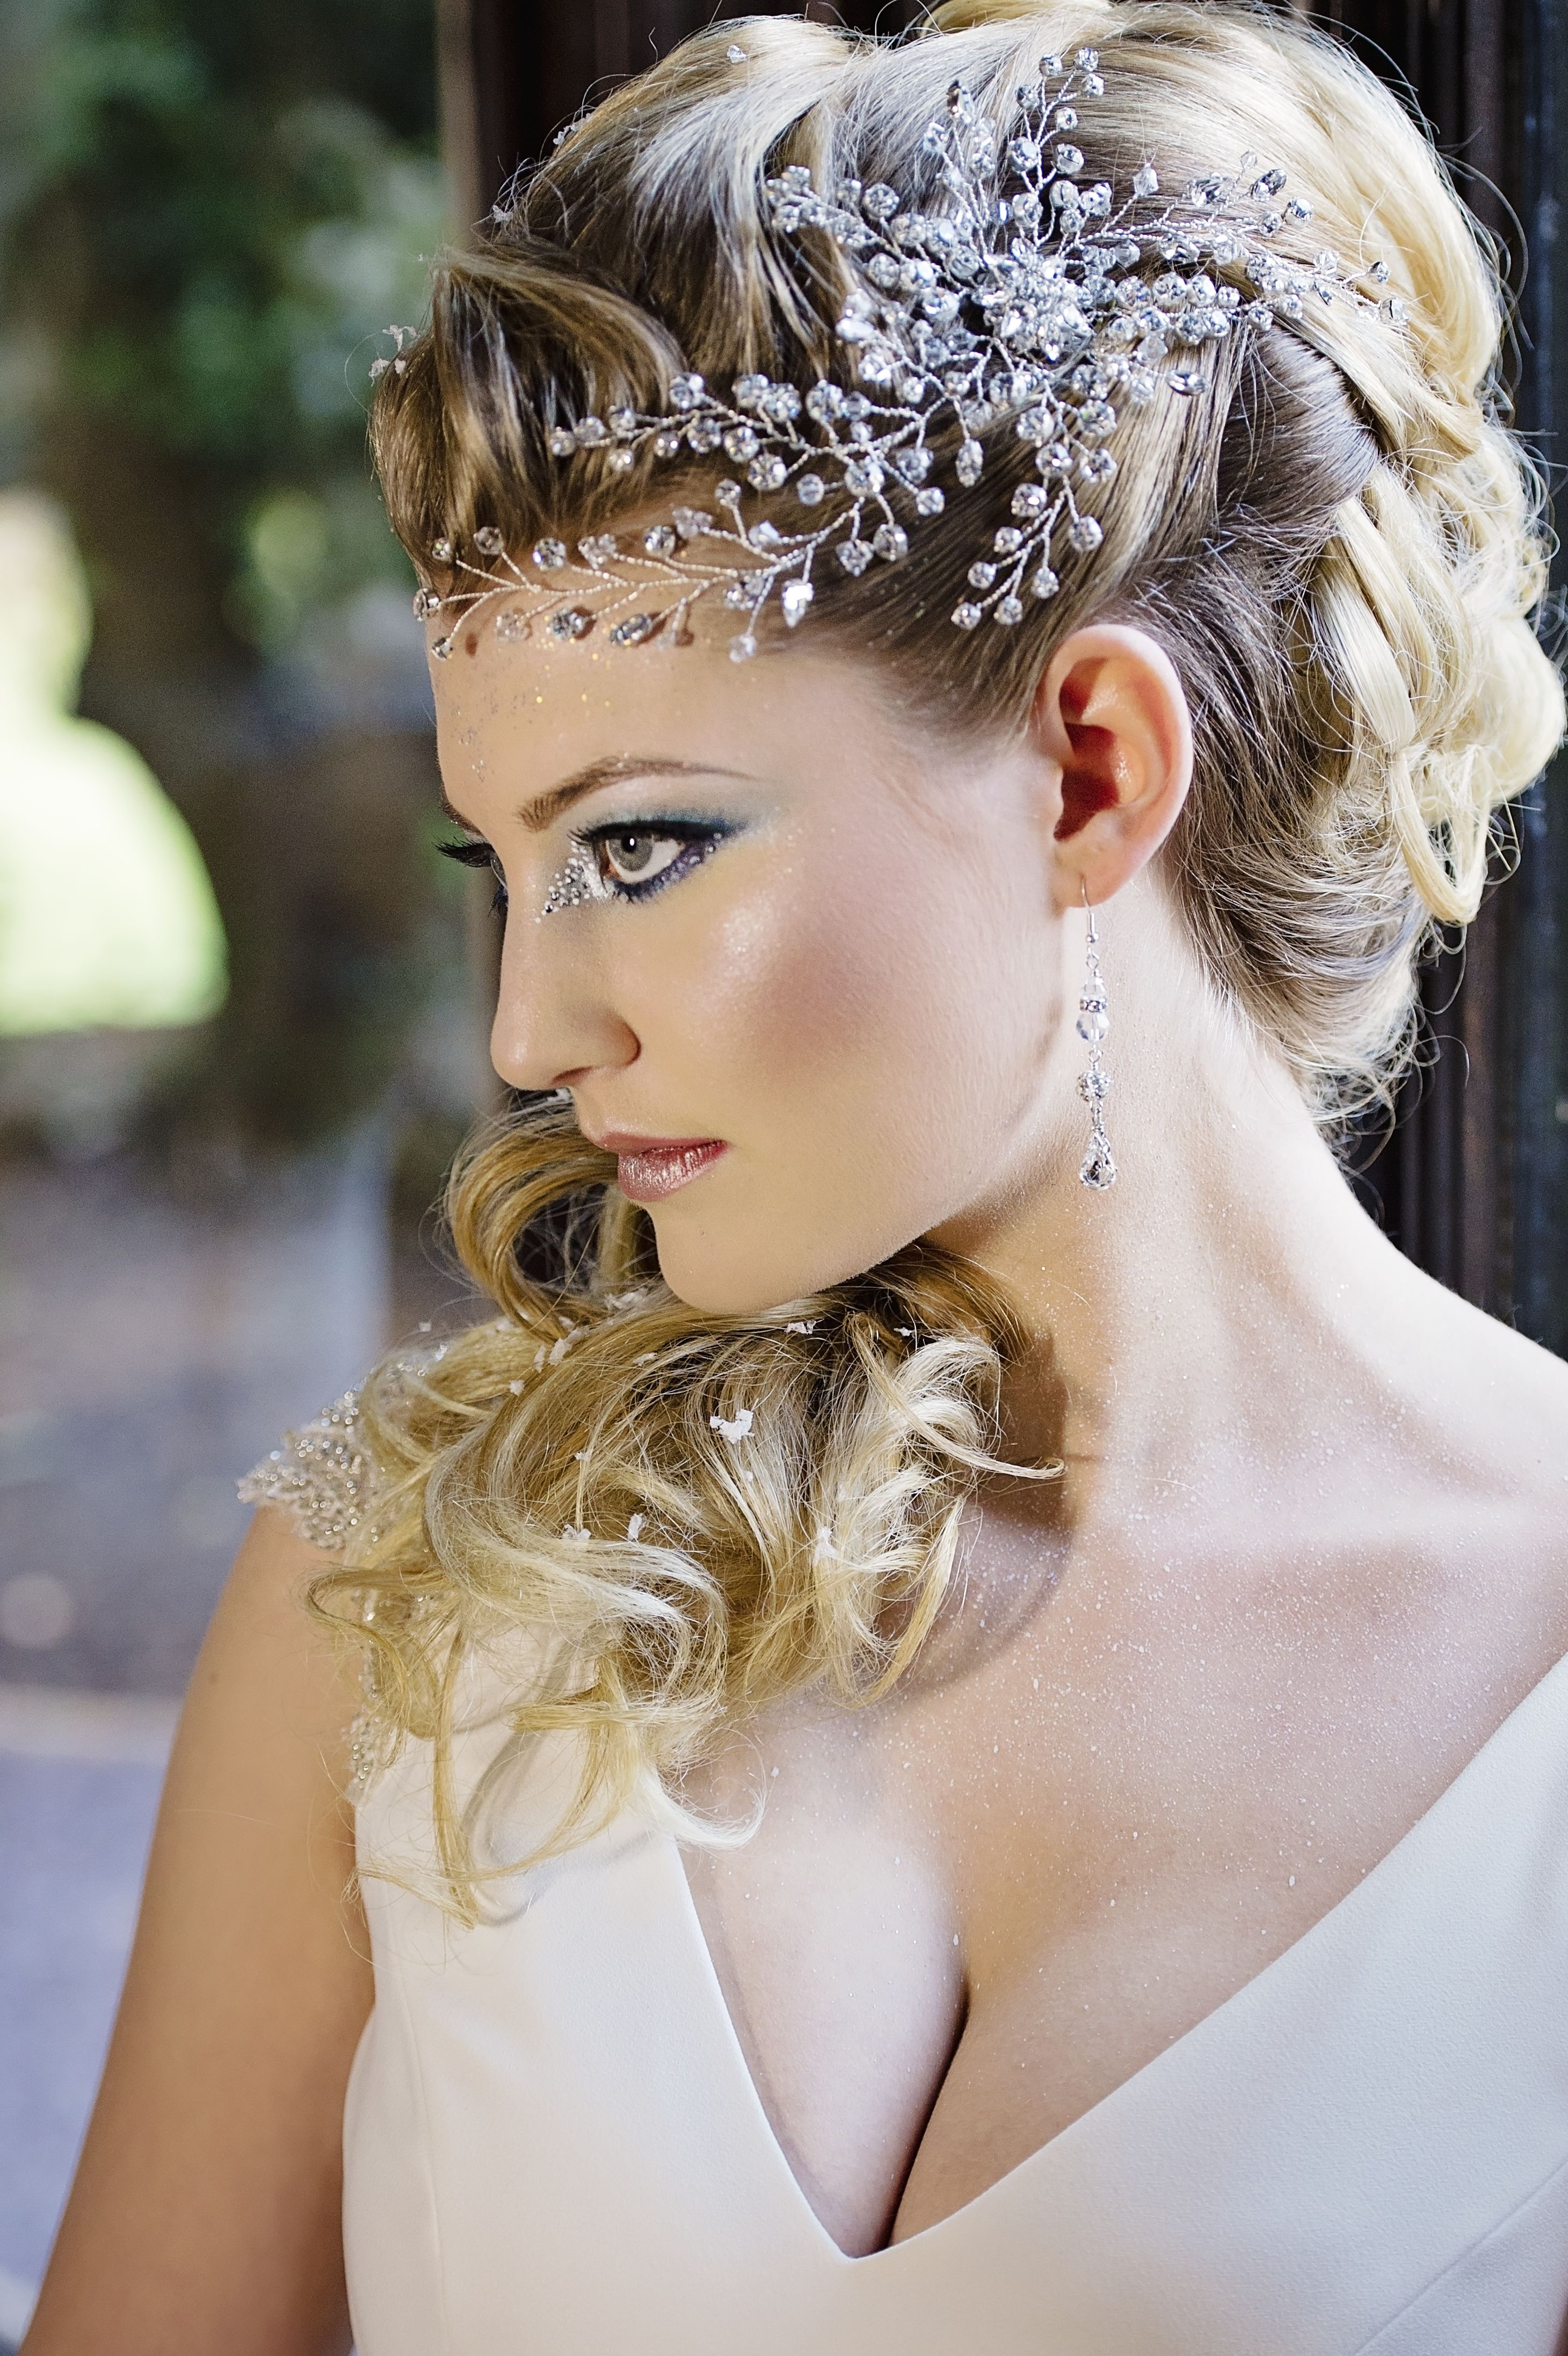 ice queen inspired bridal photo shoot. make-up by rachel